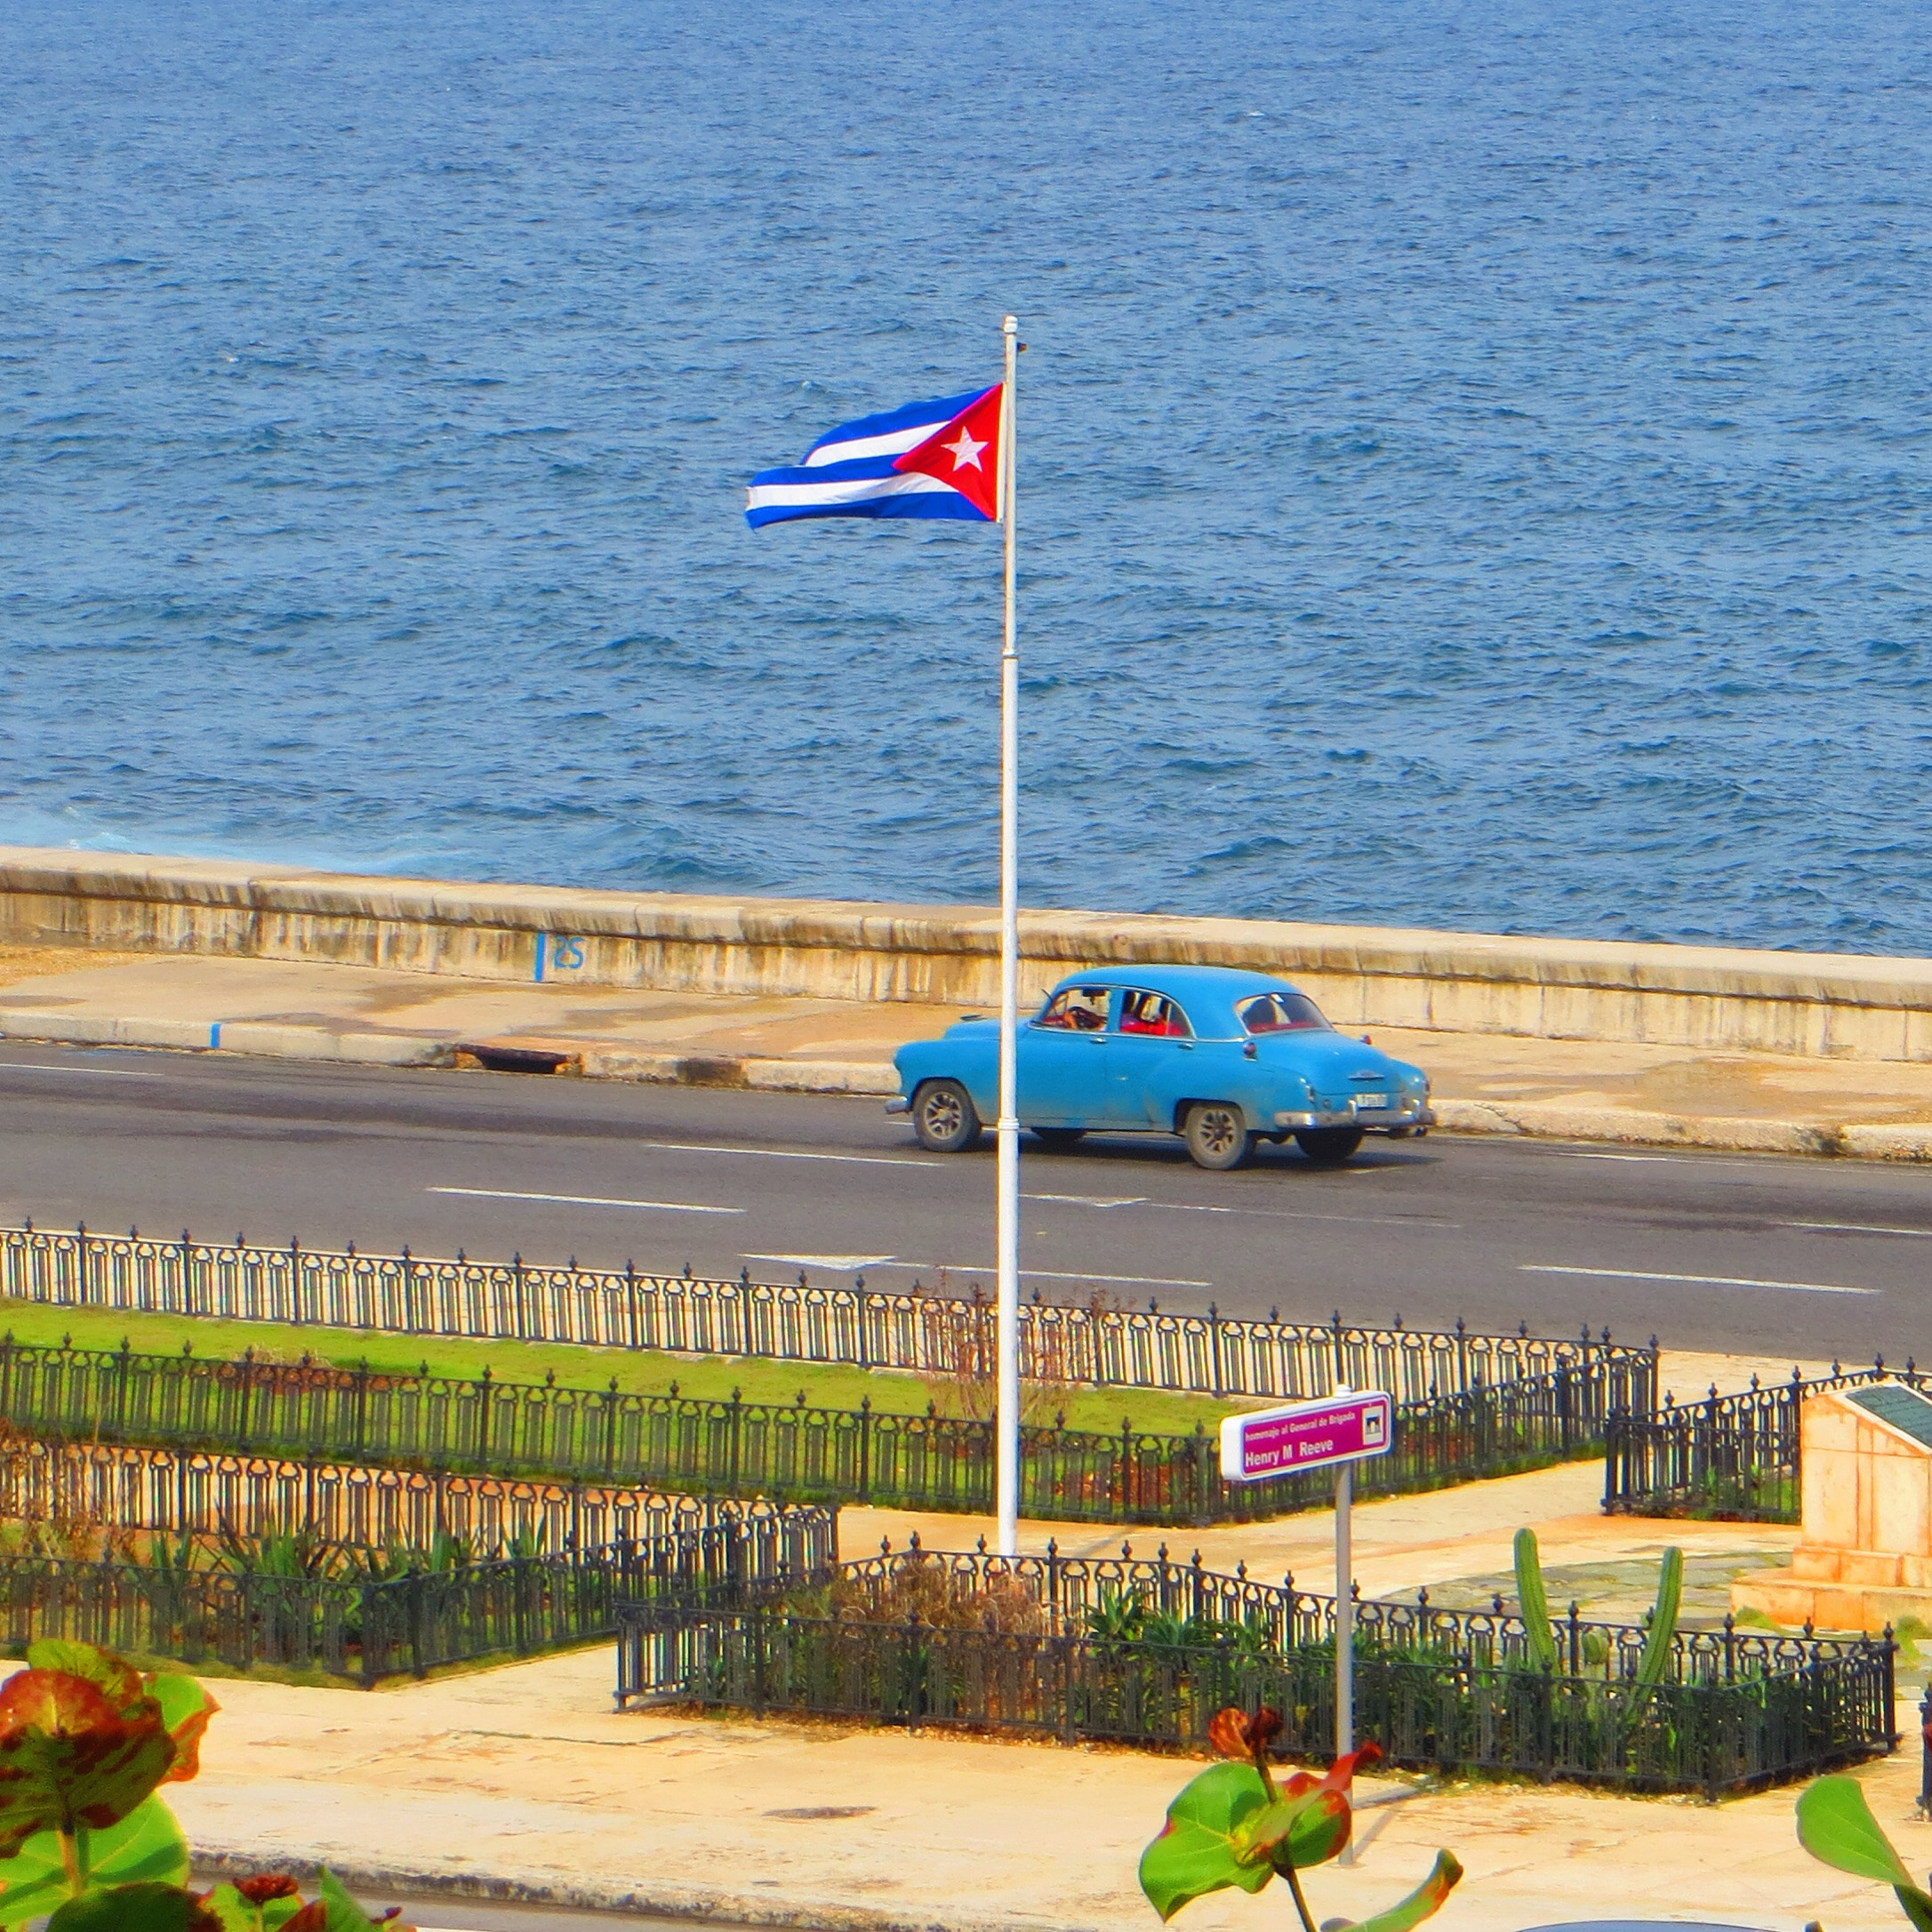 Take a ride with Cuba-IT.us